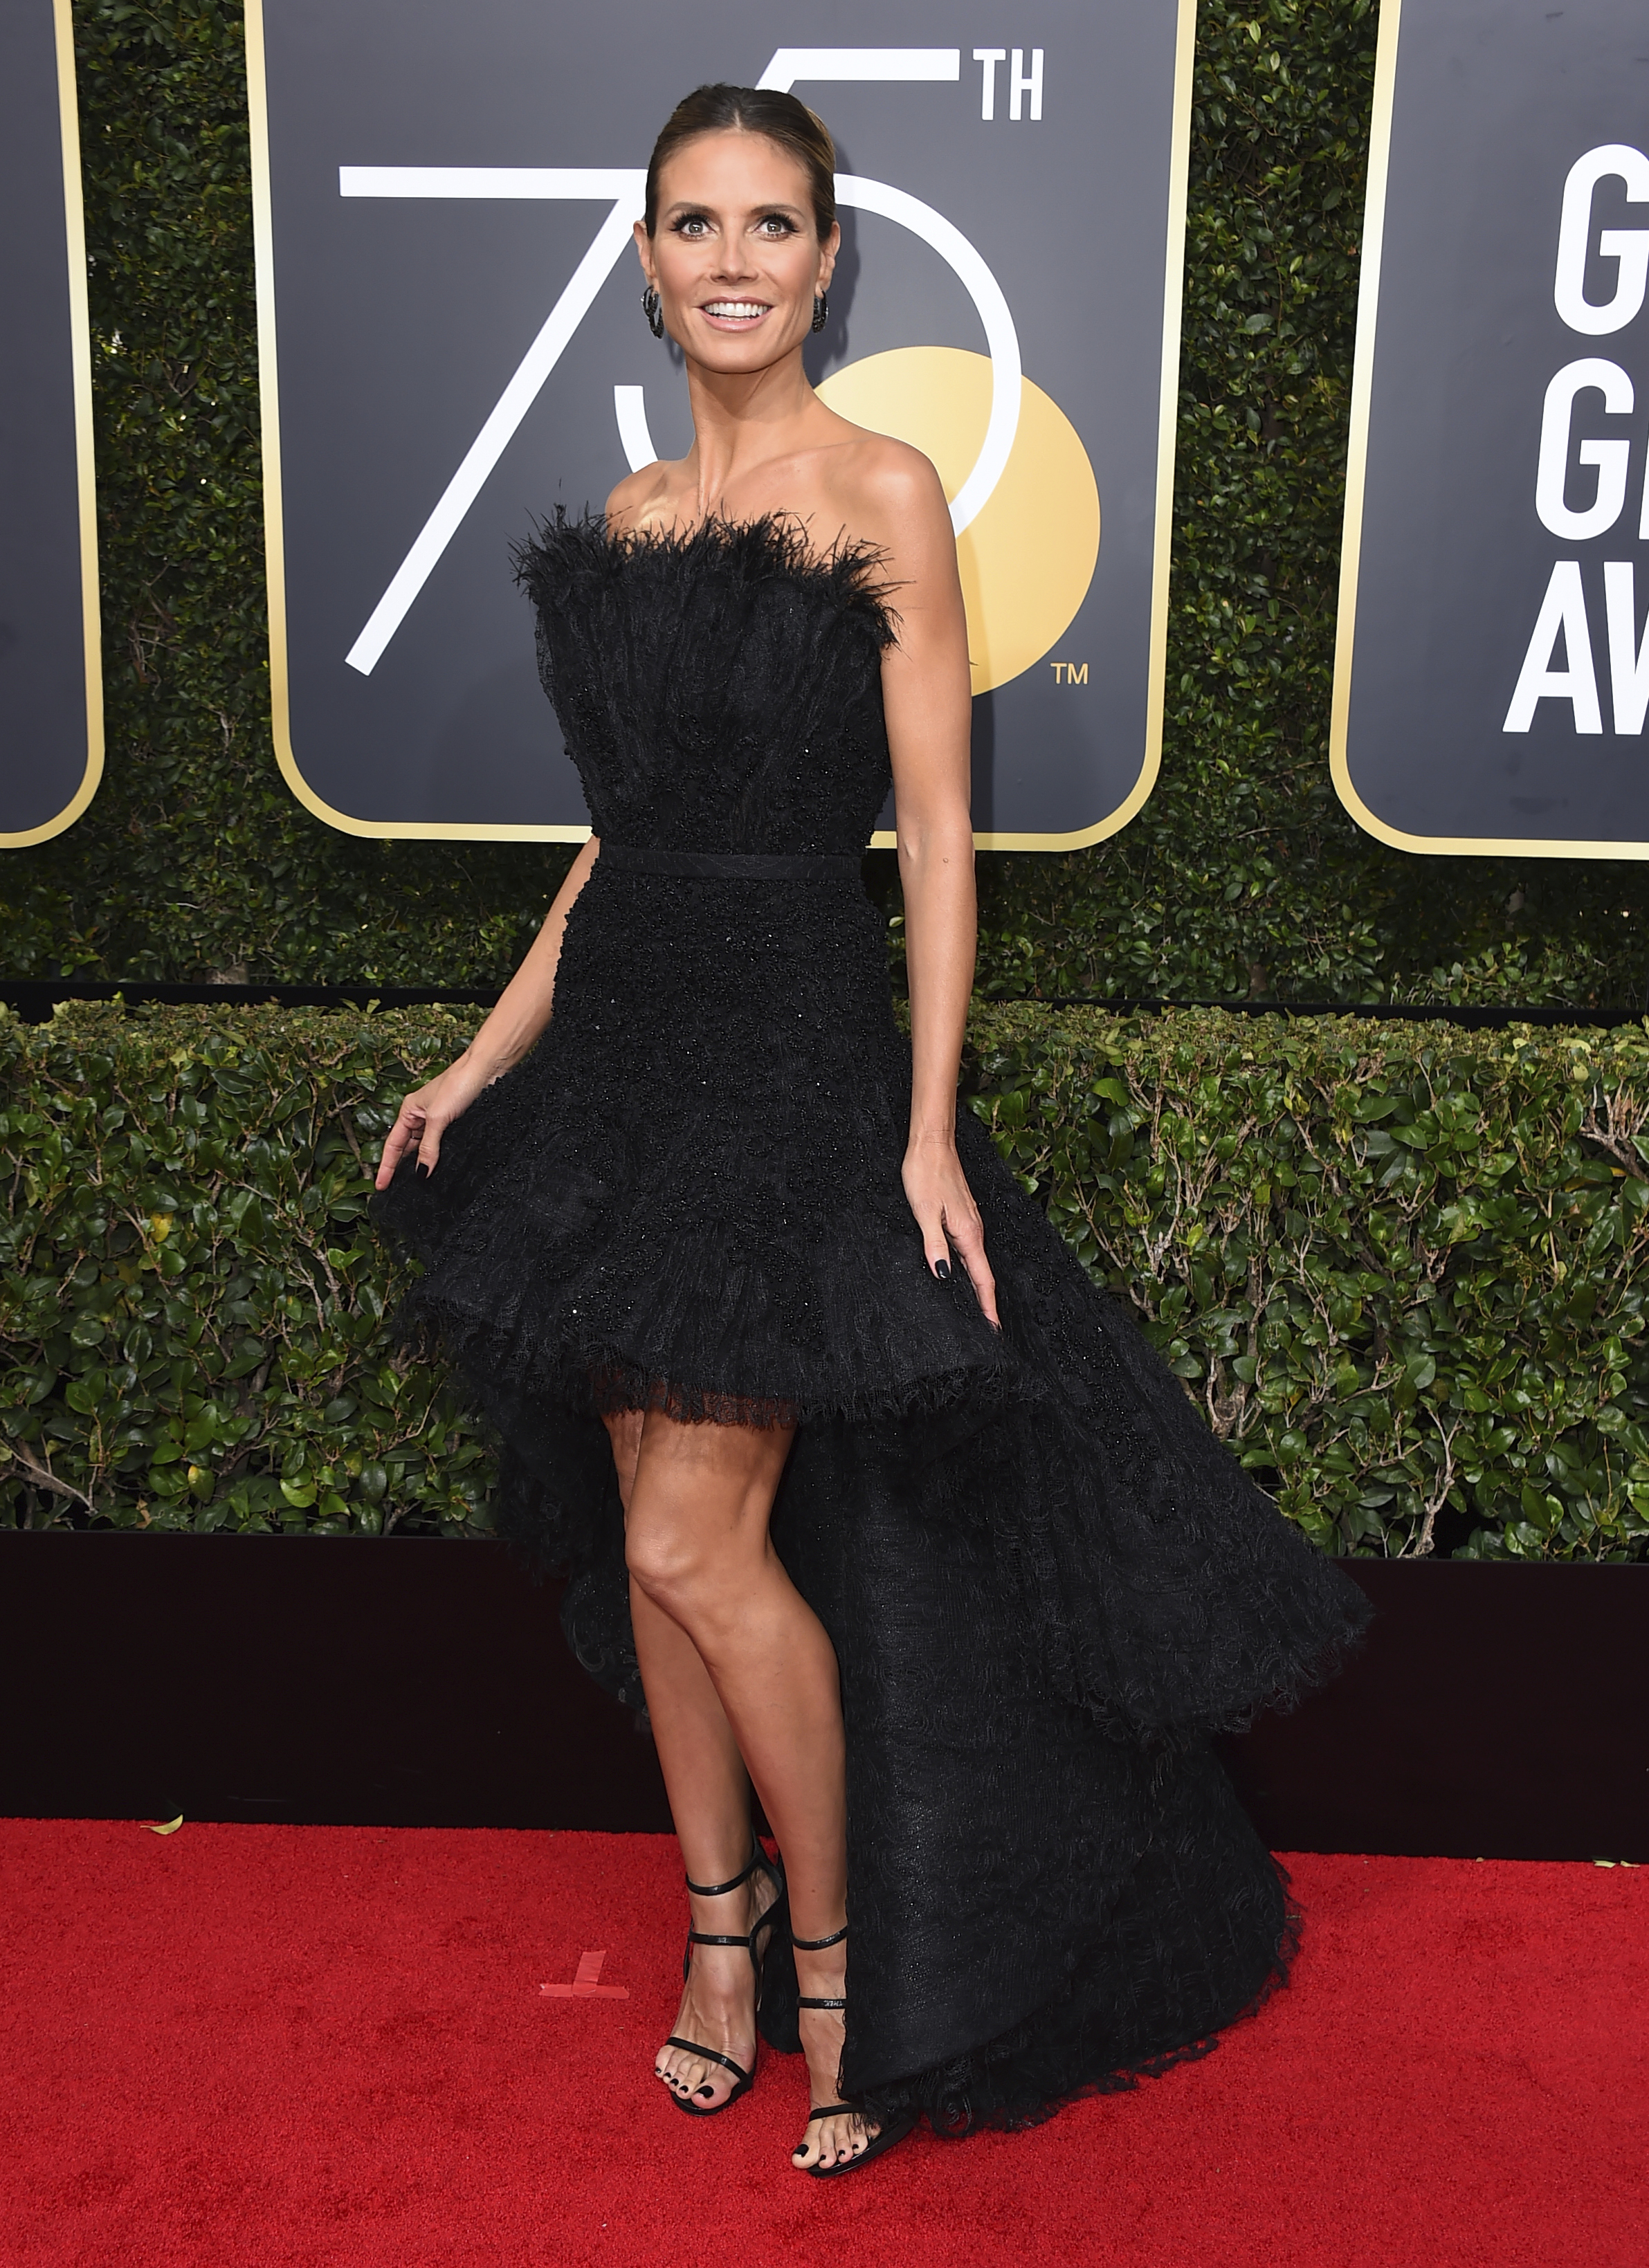 <div class='meta'><div class='origin-logo' data-origin='AP'></div><span class='caption-text' data-credit='Jordan Strauss/Invision/AP'>Heidi Klum arrives at the 75th annual Golden Globe Awards at the Beverly Hilton Hotel on Sunday, Jan. 7, 2018, in Beverly Hills, Calif.</span></div>